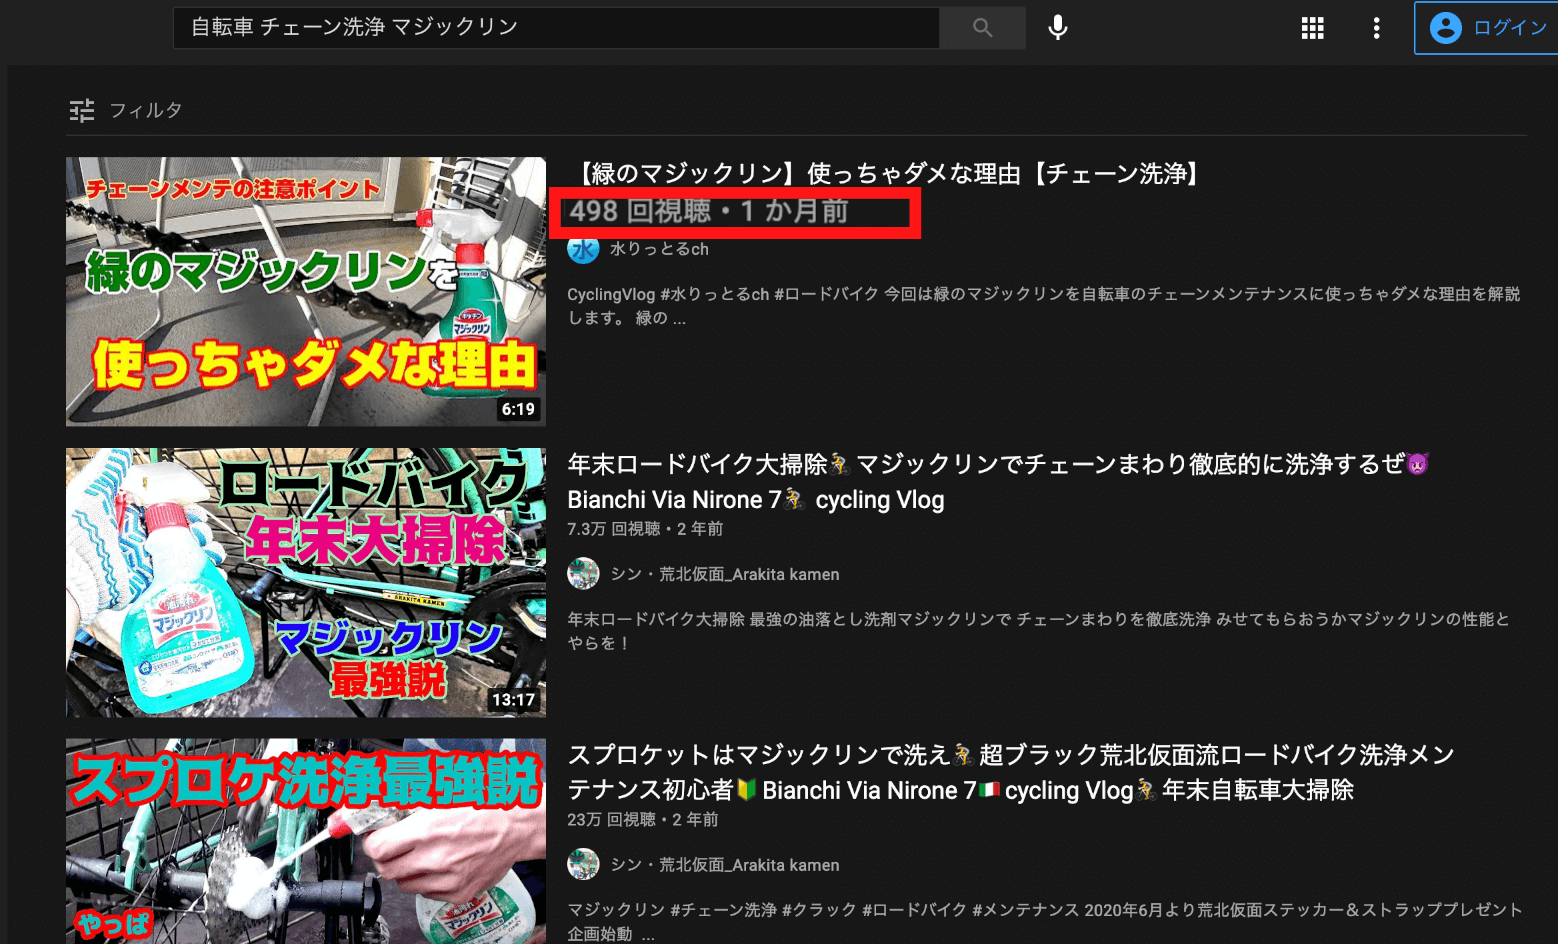 youtube-top display-content